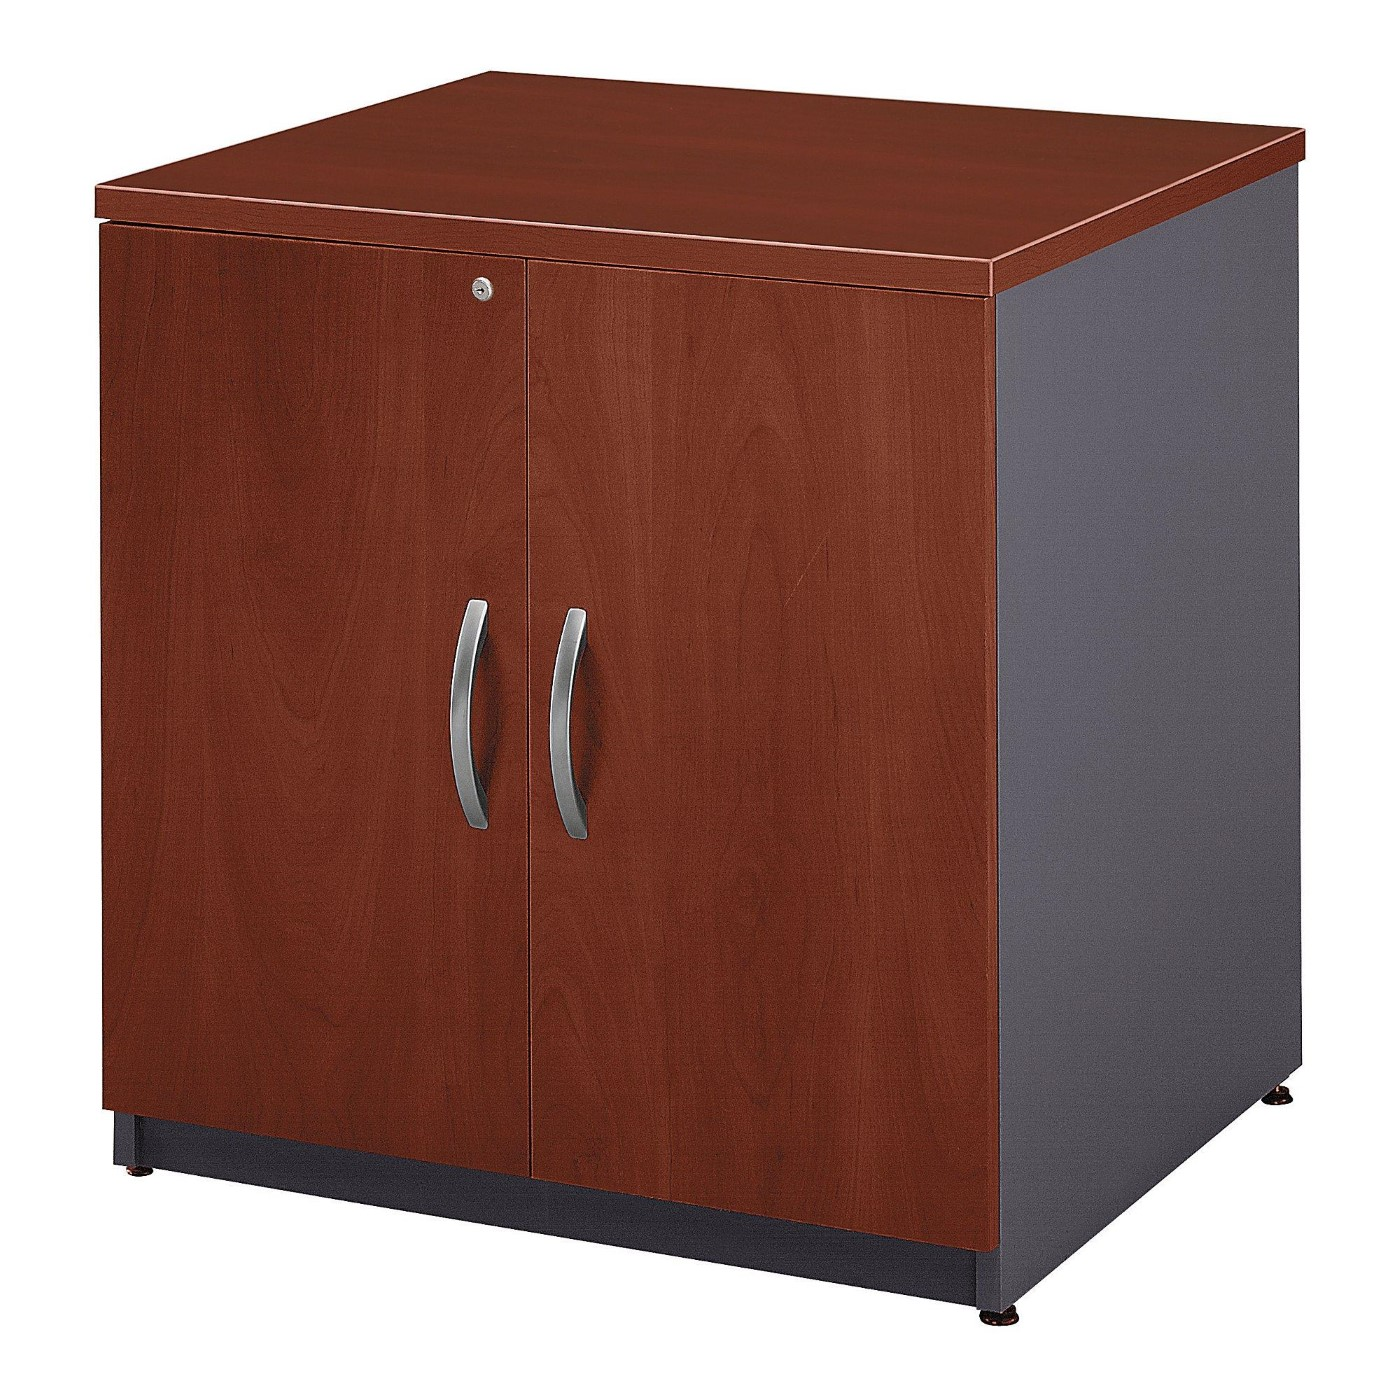 BUSH BUSINESS FURNITURE SERIES C 30W STORAGE CABINET. FREE SHIPPING  VIDEO BELOW.  SALE DEDUCT 10% MORE ENTER '10percent' IN COUPON CODE BOX WHILE CHECKING OUT.